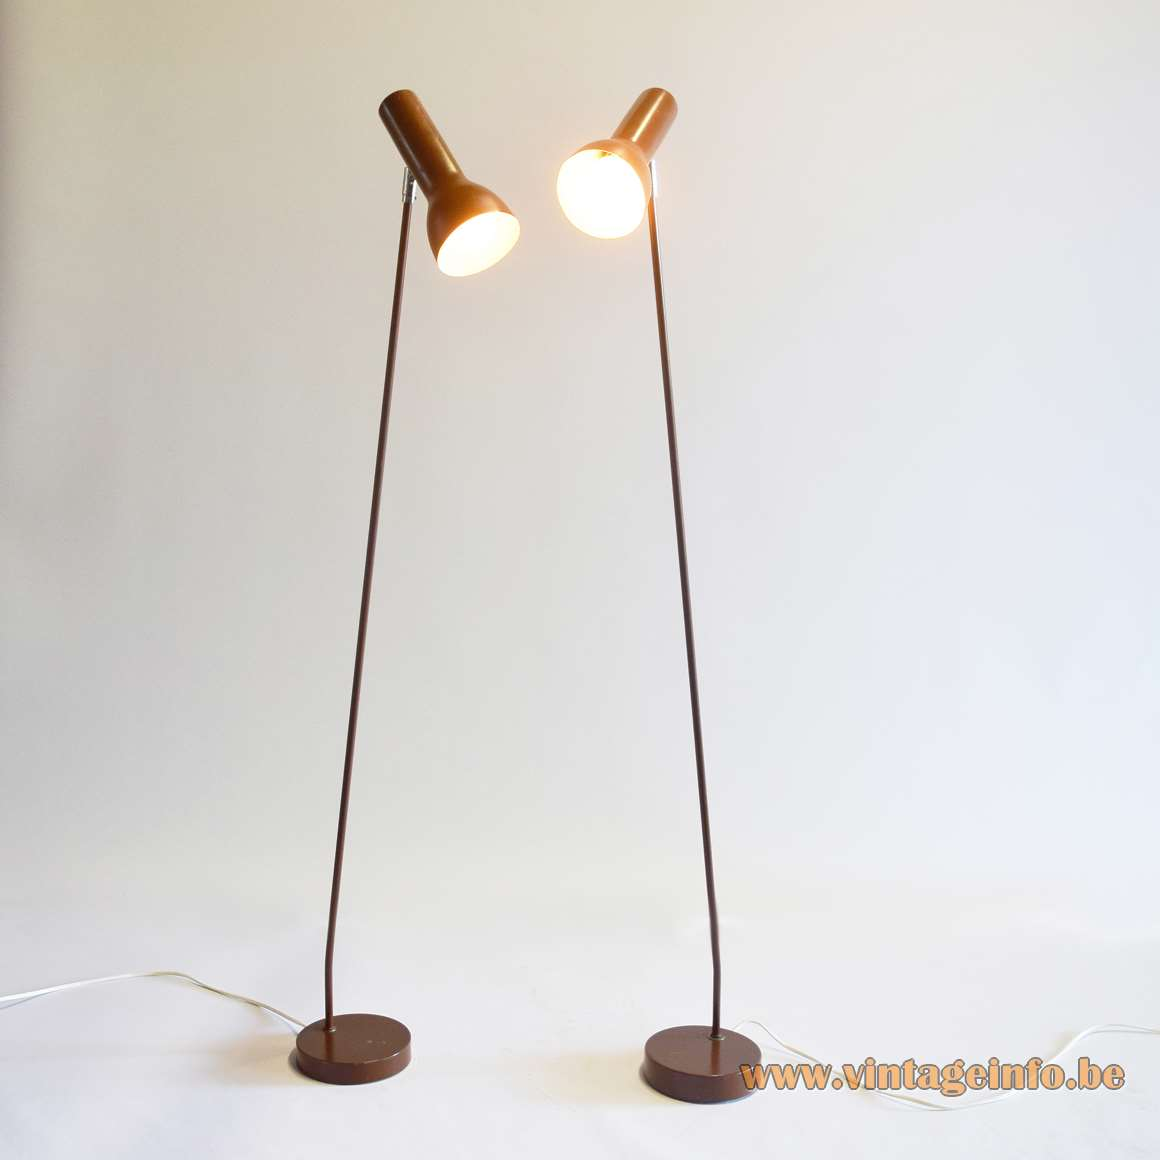 OMI 1970s Reading Floor Lamps